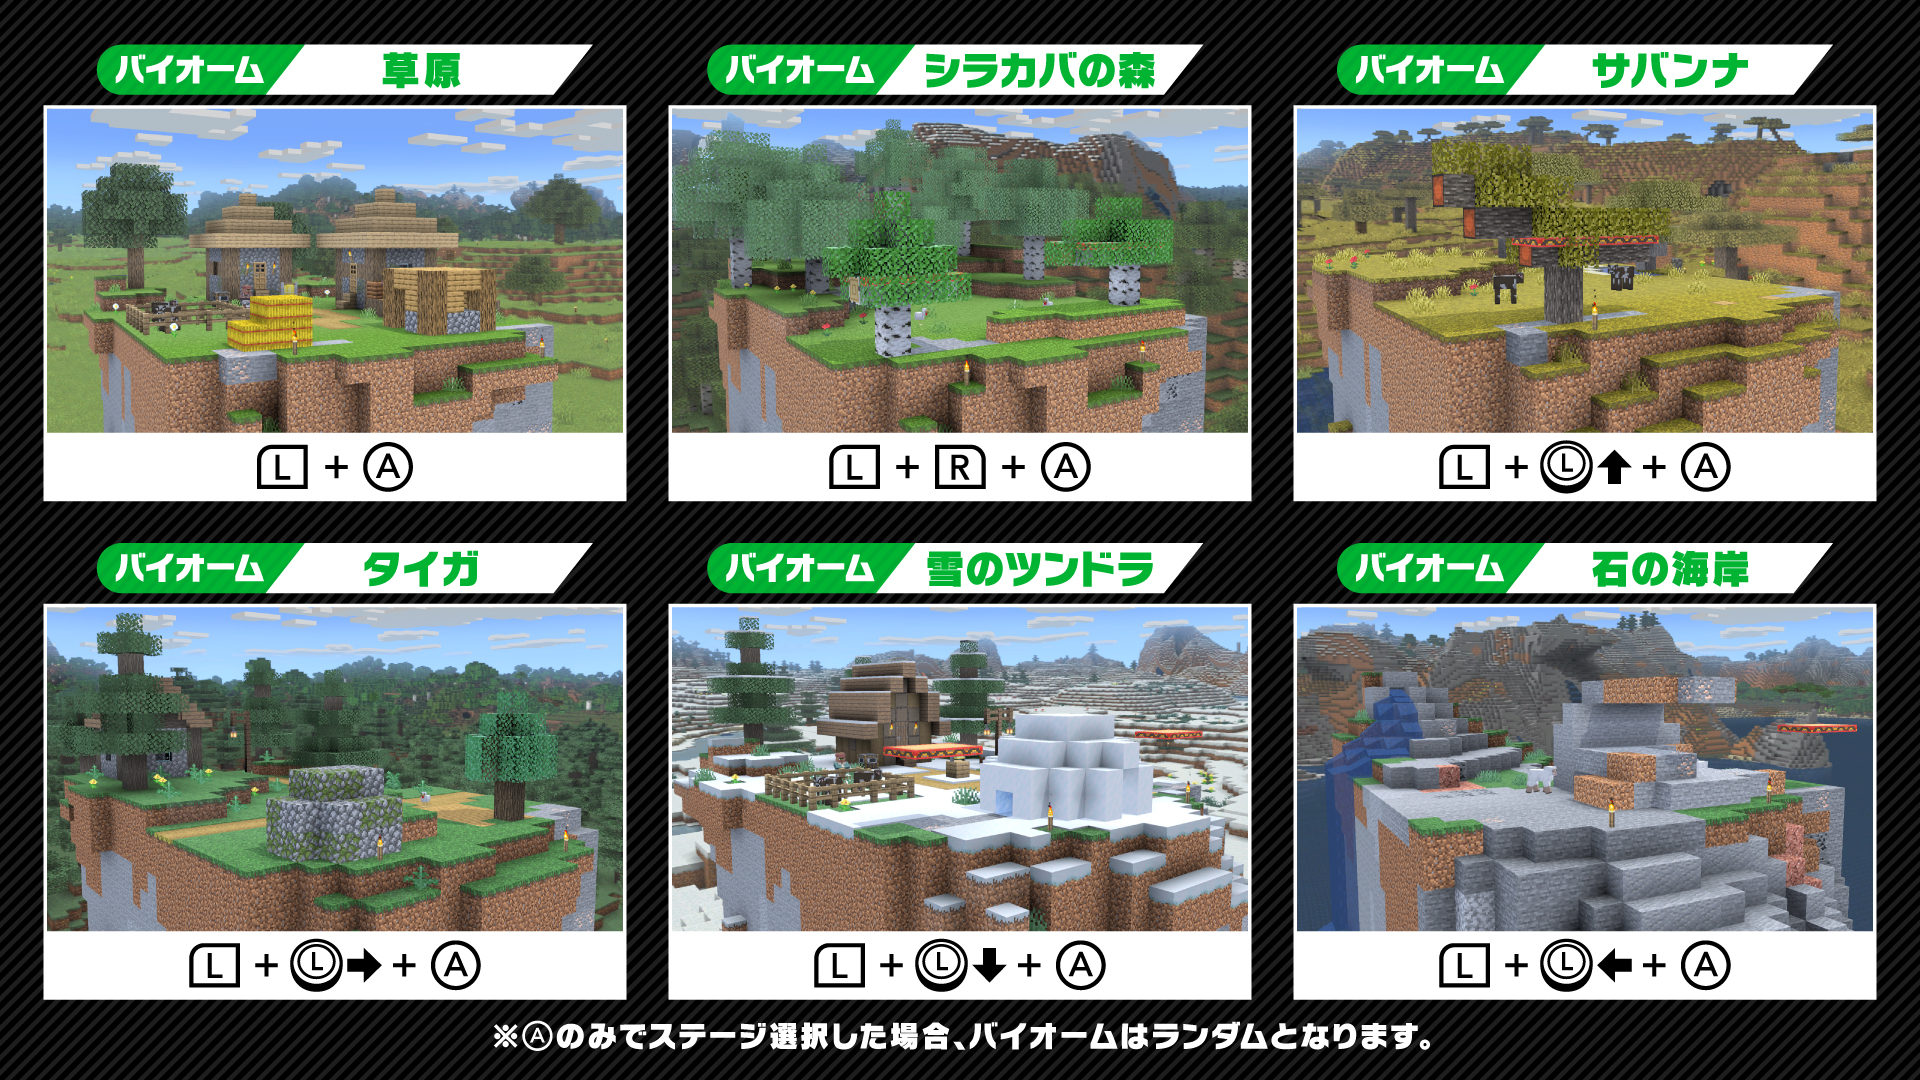 Smash Ultimate lets you pick the Minecraft biome you want with a cheat code screenshot